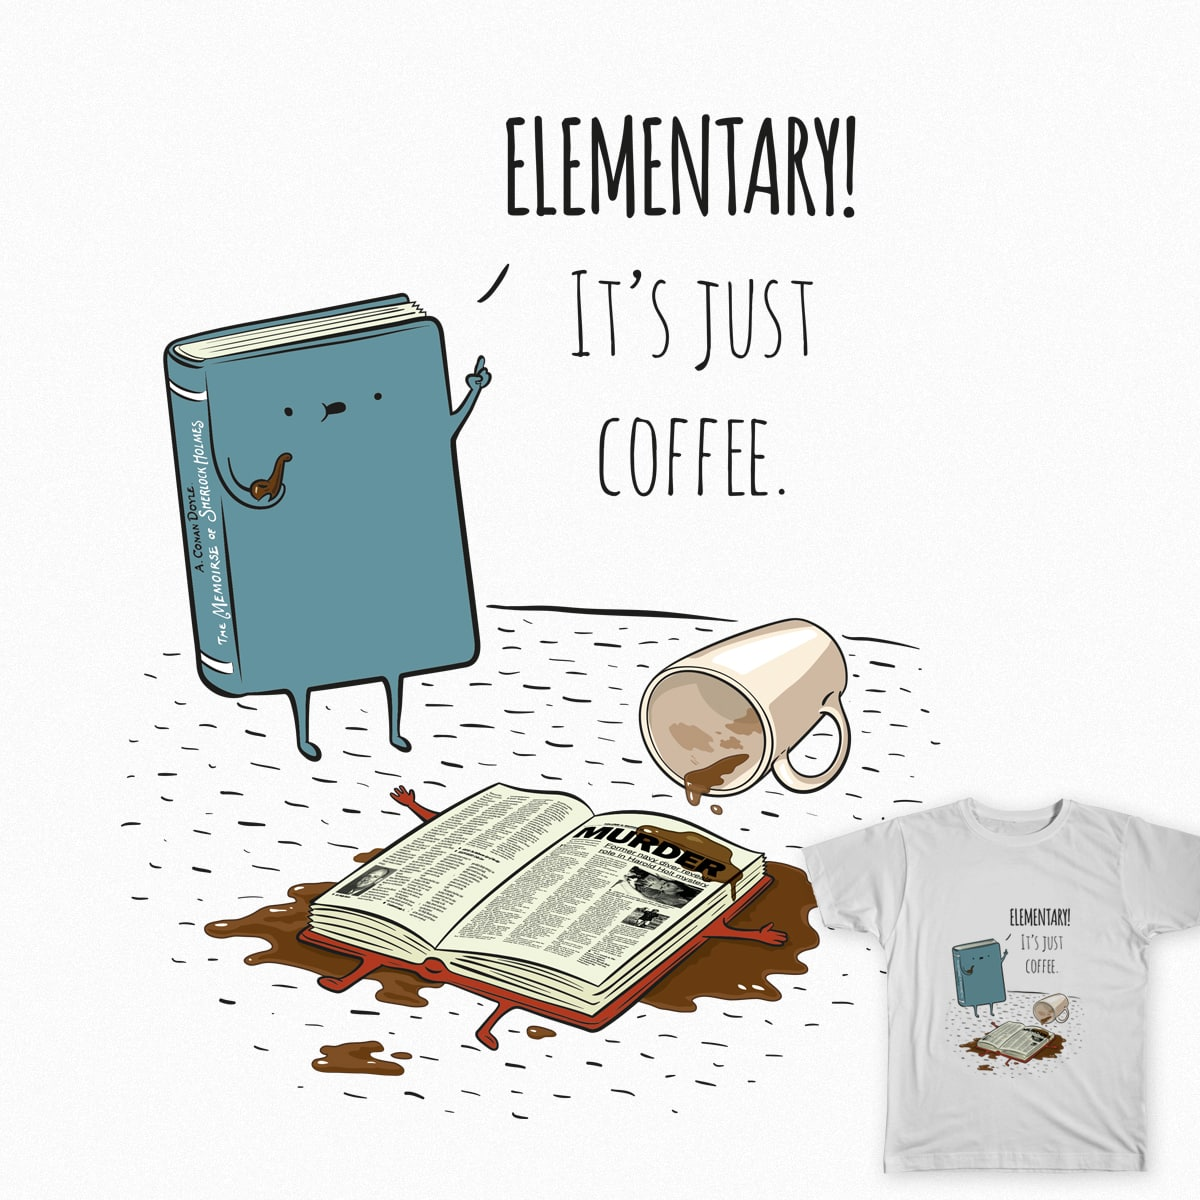 Elementary! by Vera_Ae on Threadless